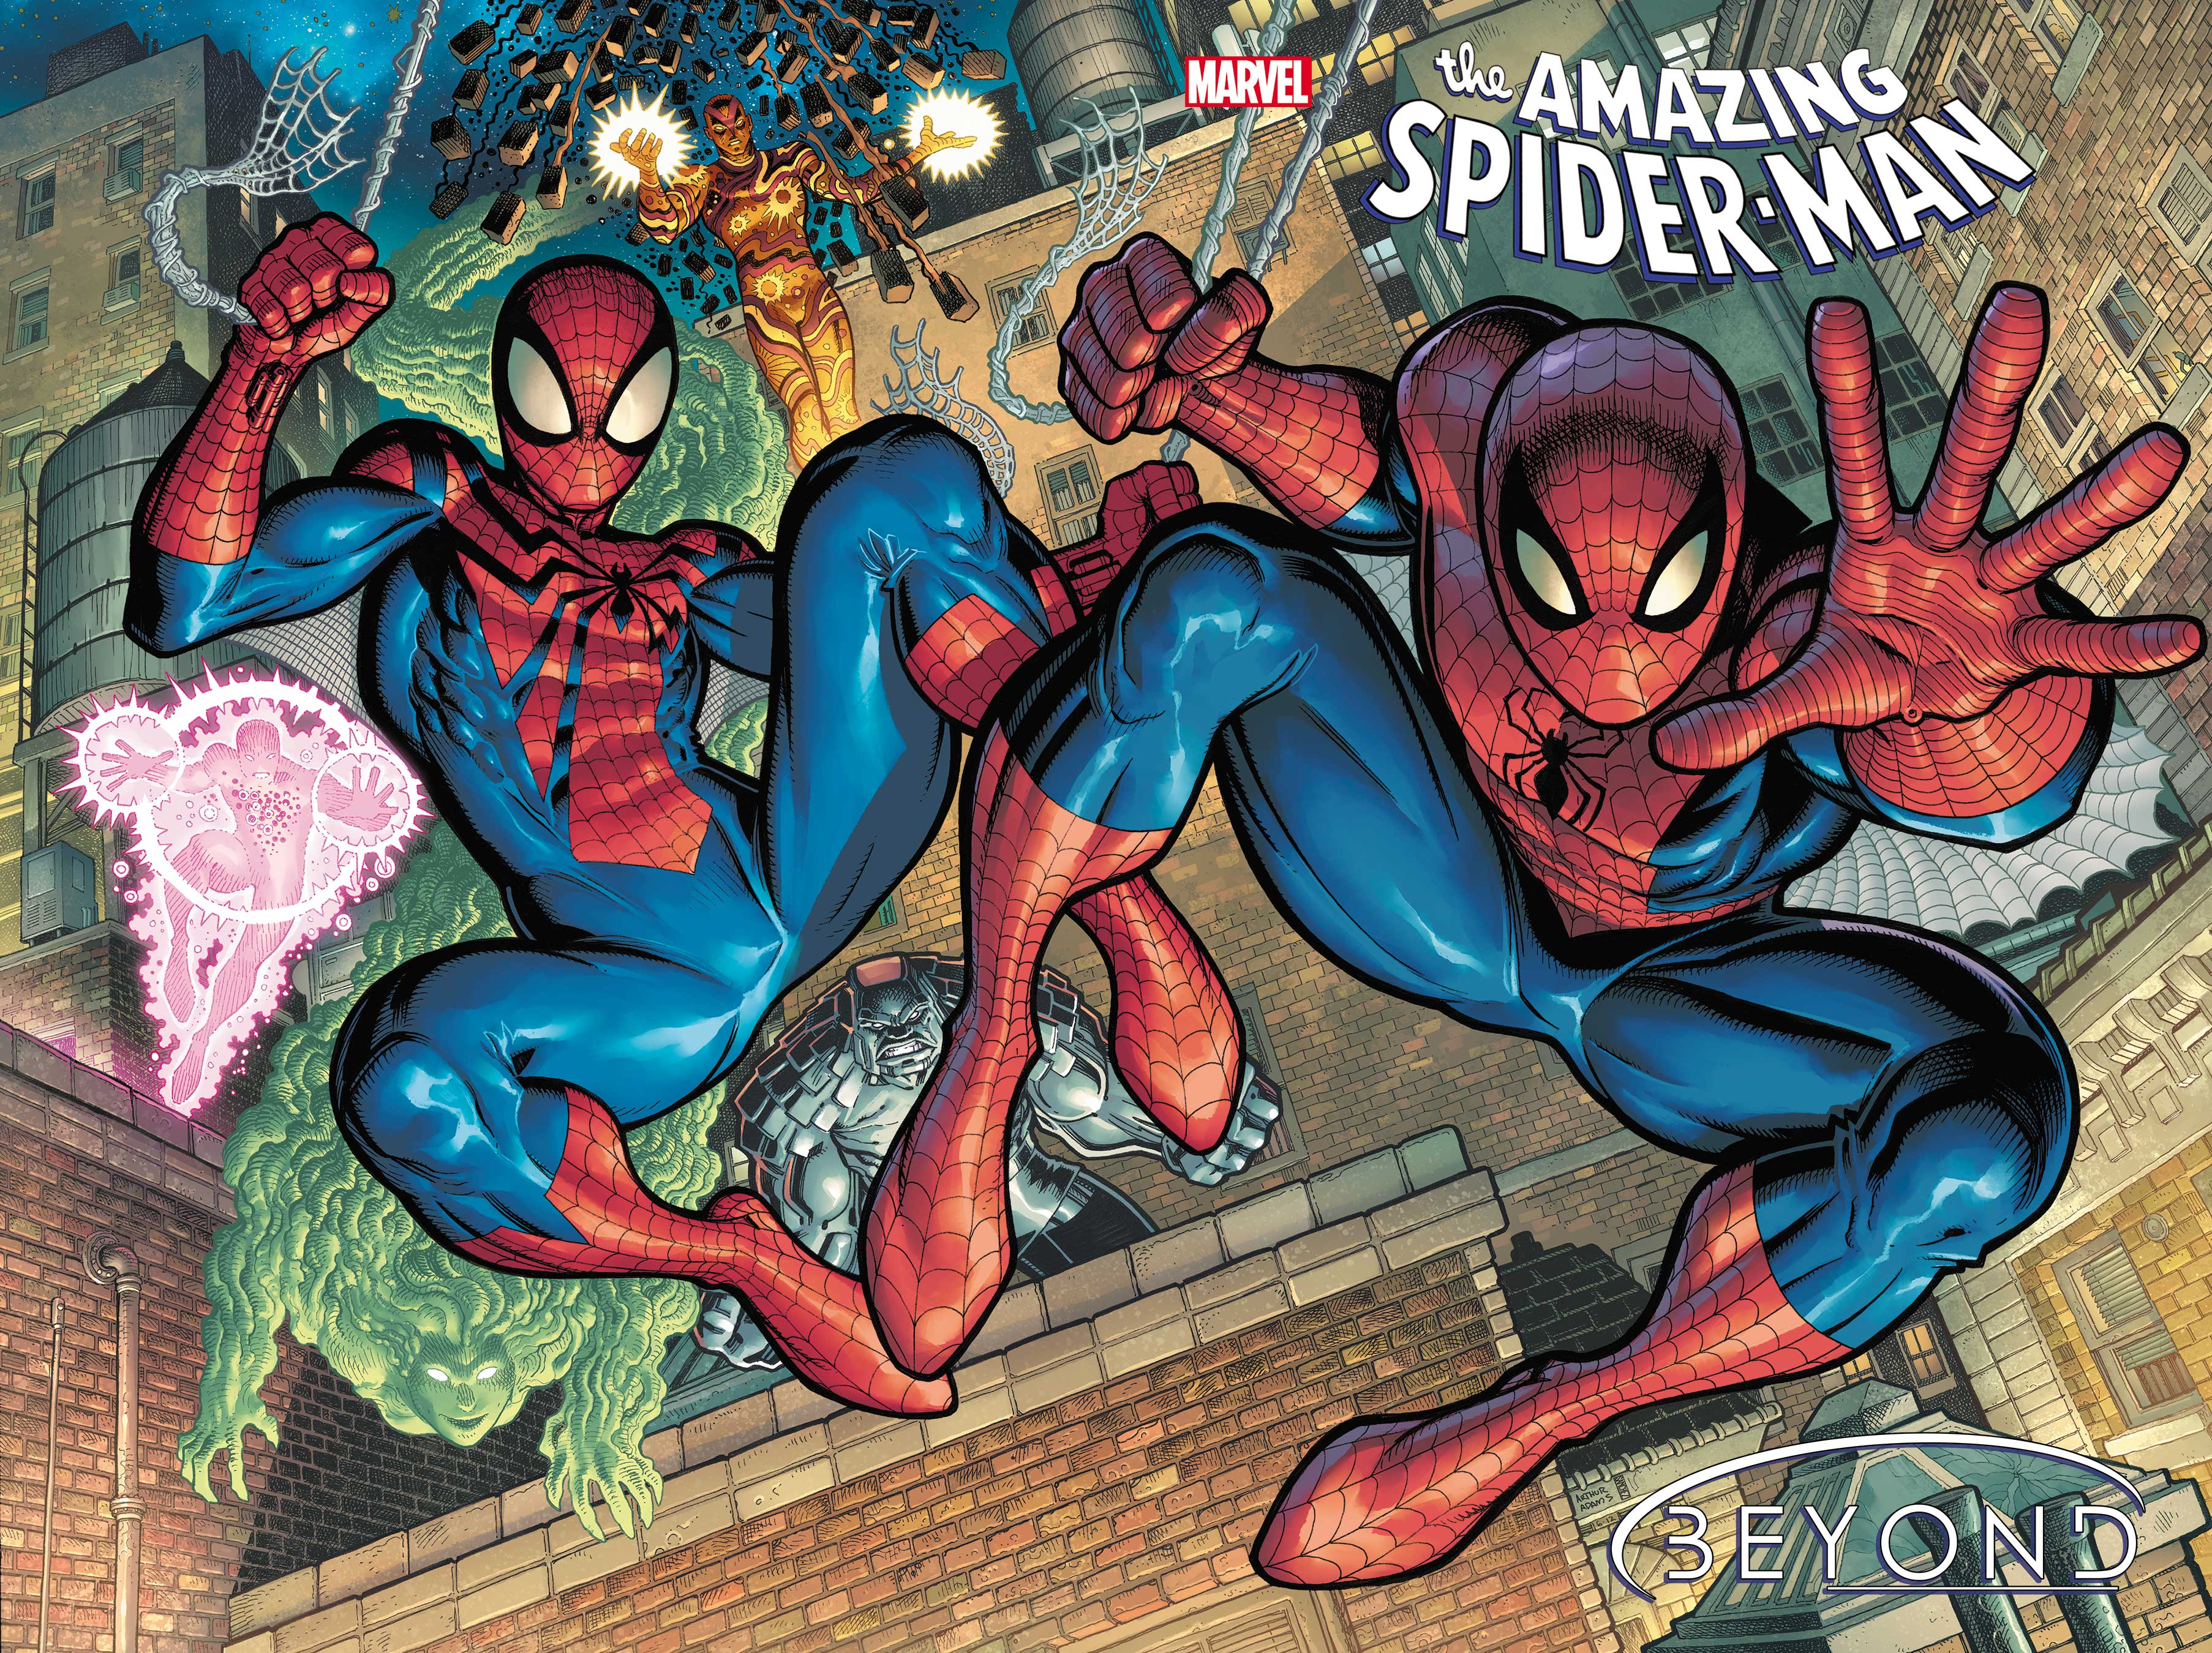 PETER PARKER AND BEN REILLY SWING INTO ACTION ON ARTHUR ADAMS' AMAZING  SPIDER-MAN #75 COVER! (ONLY ONE WILL SWING OUT!) - Spider Man Crawlspace